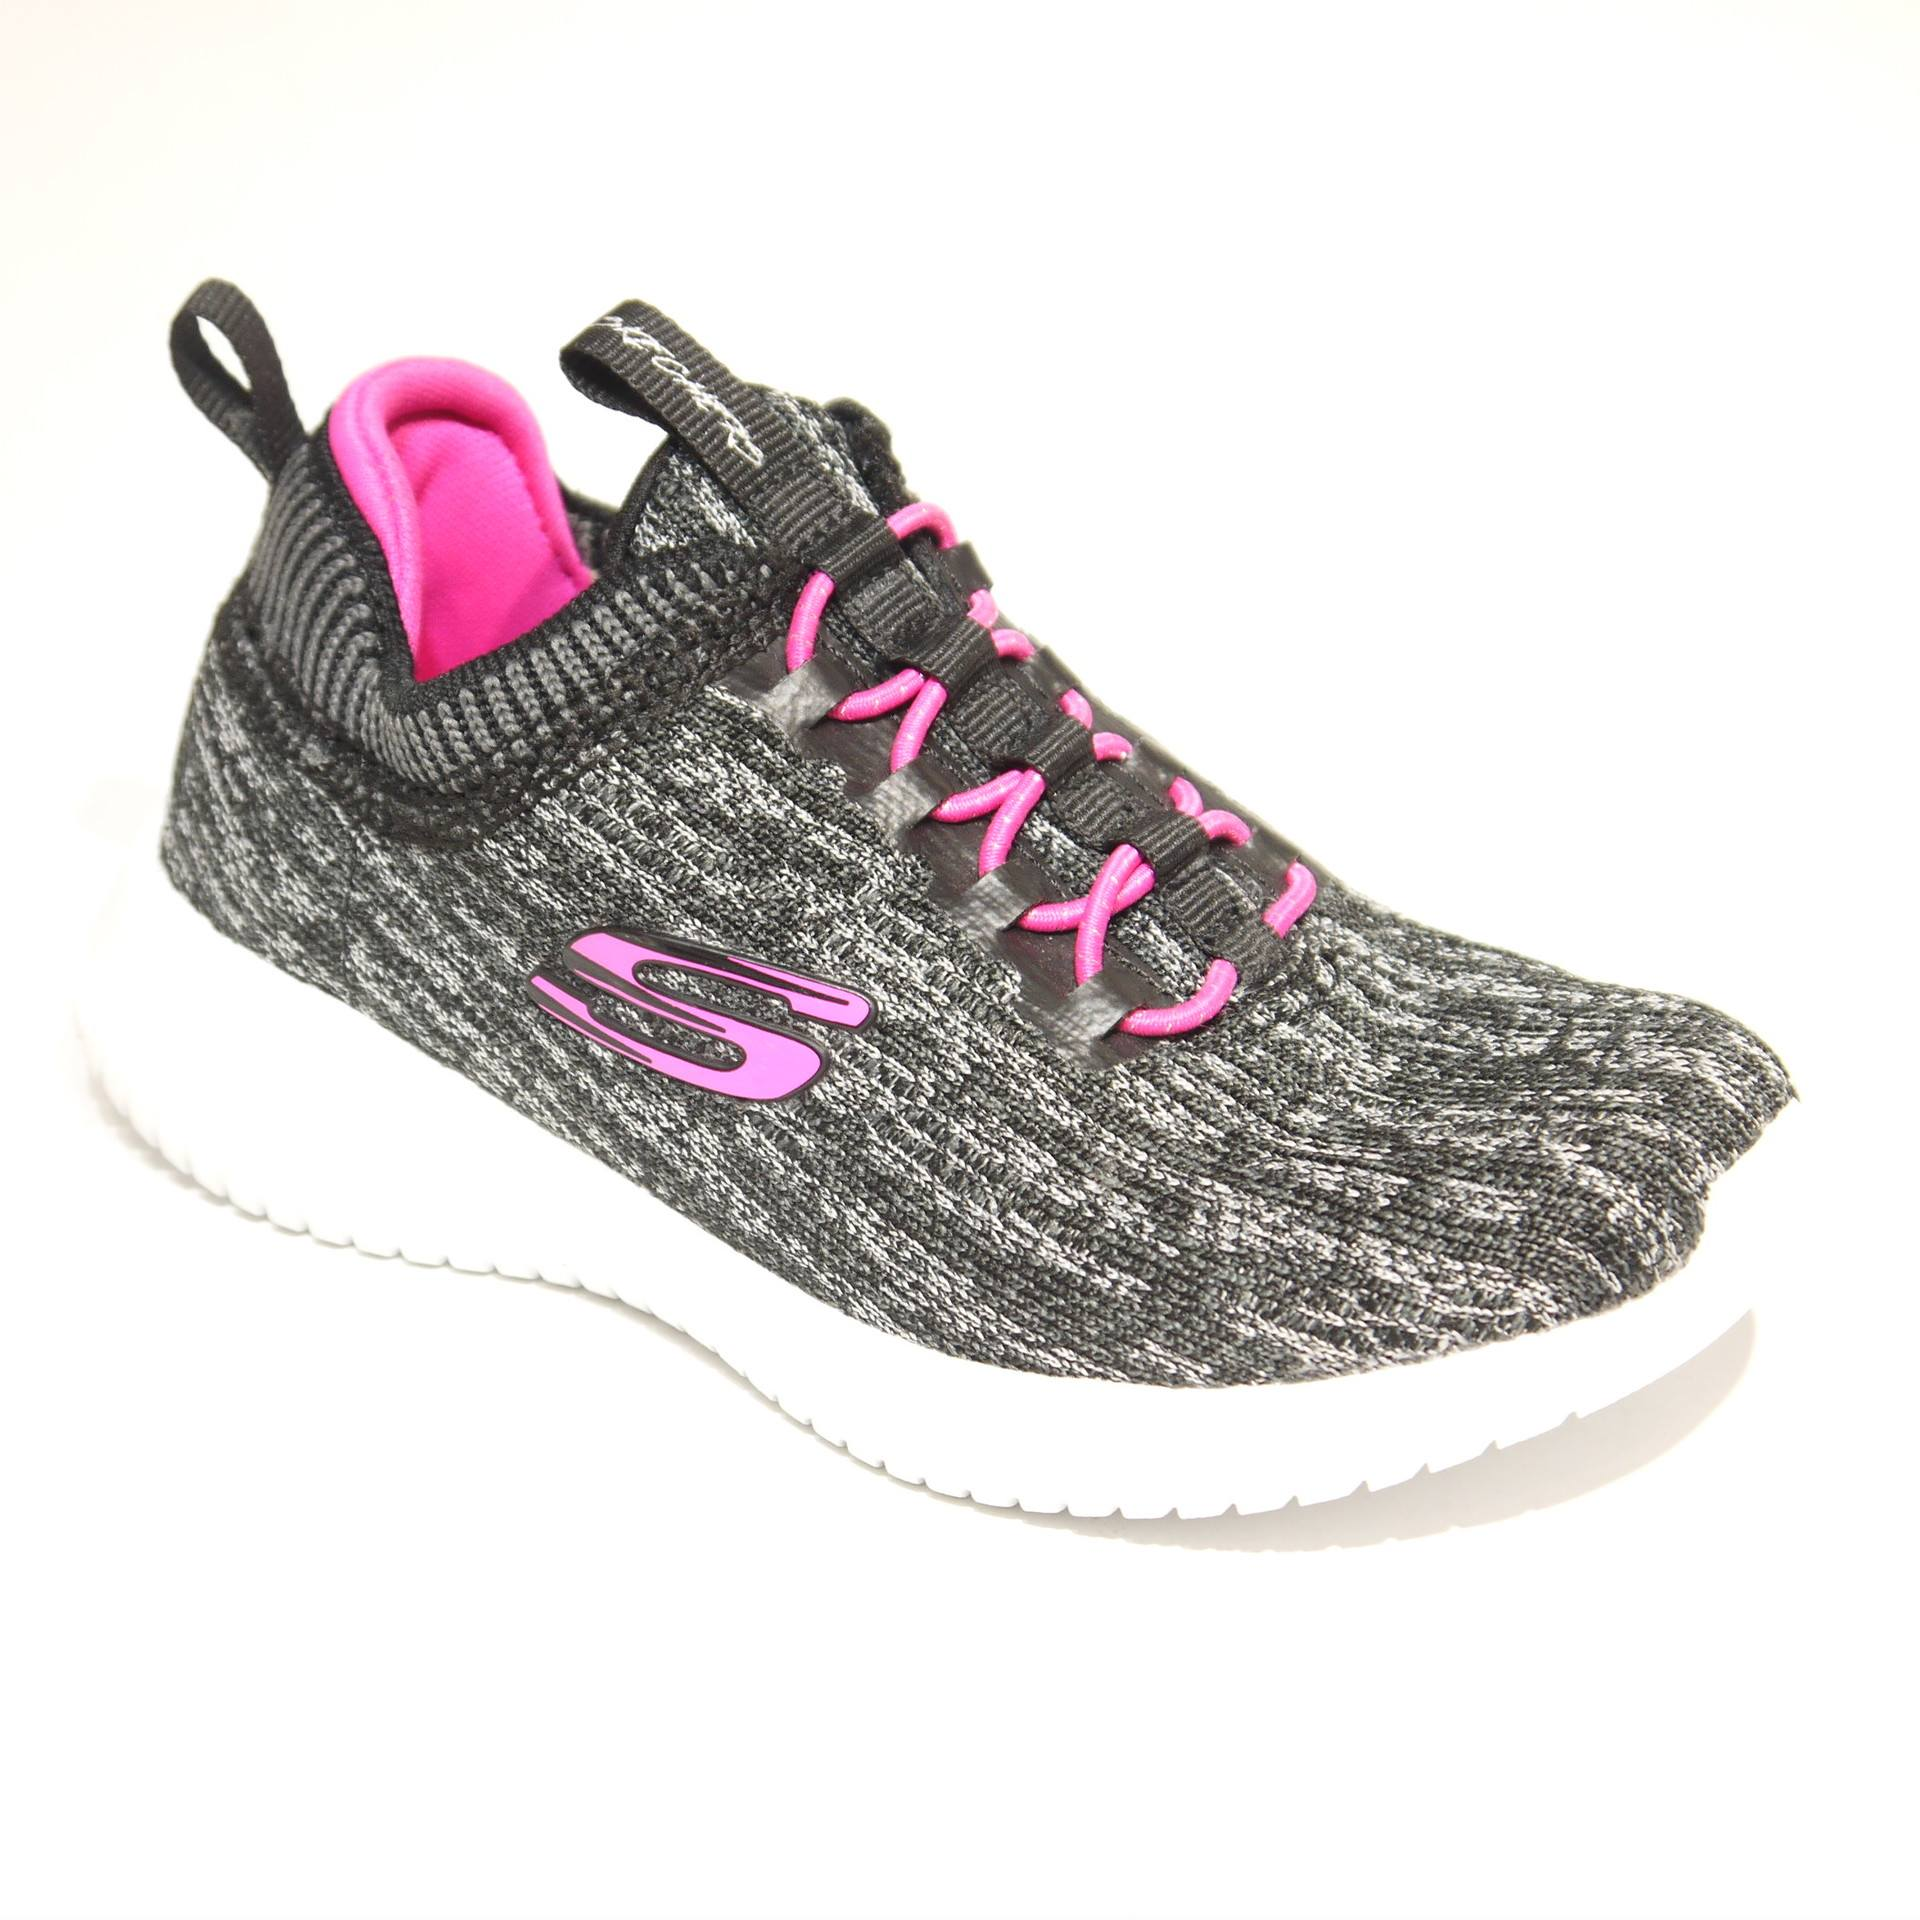 ba3e63a4d3cca Skechers Ultra Flex Bright Horizon Black/Hot Pink | Brassington Bros